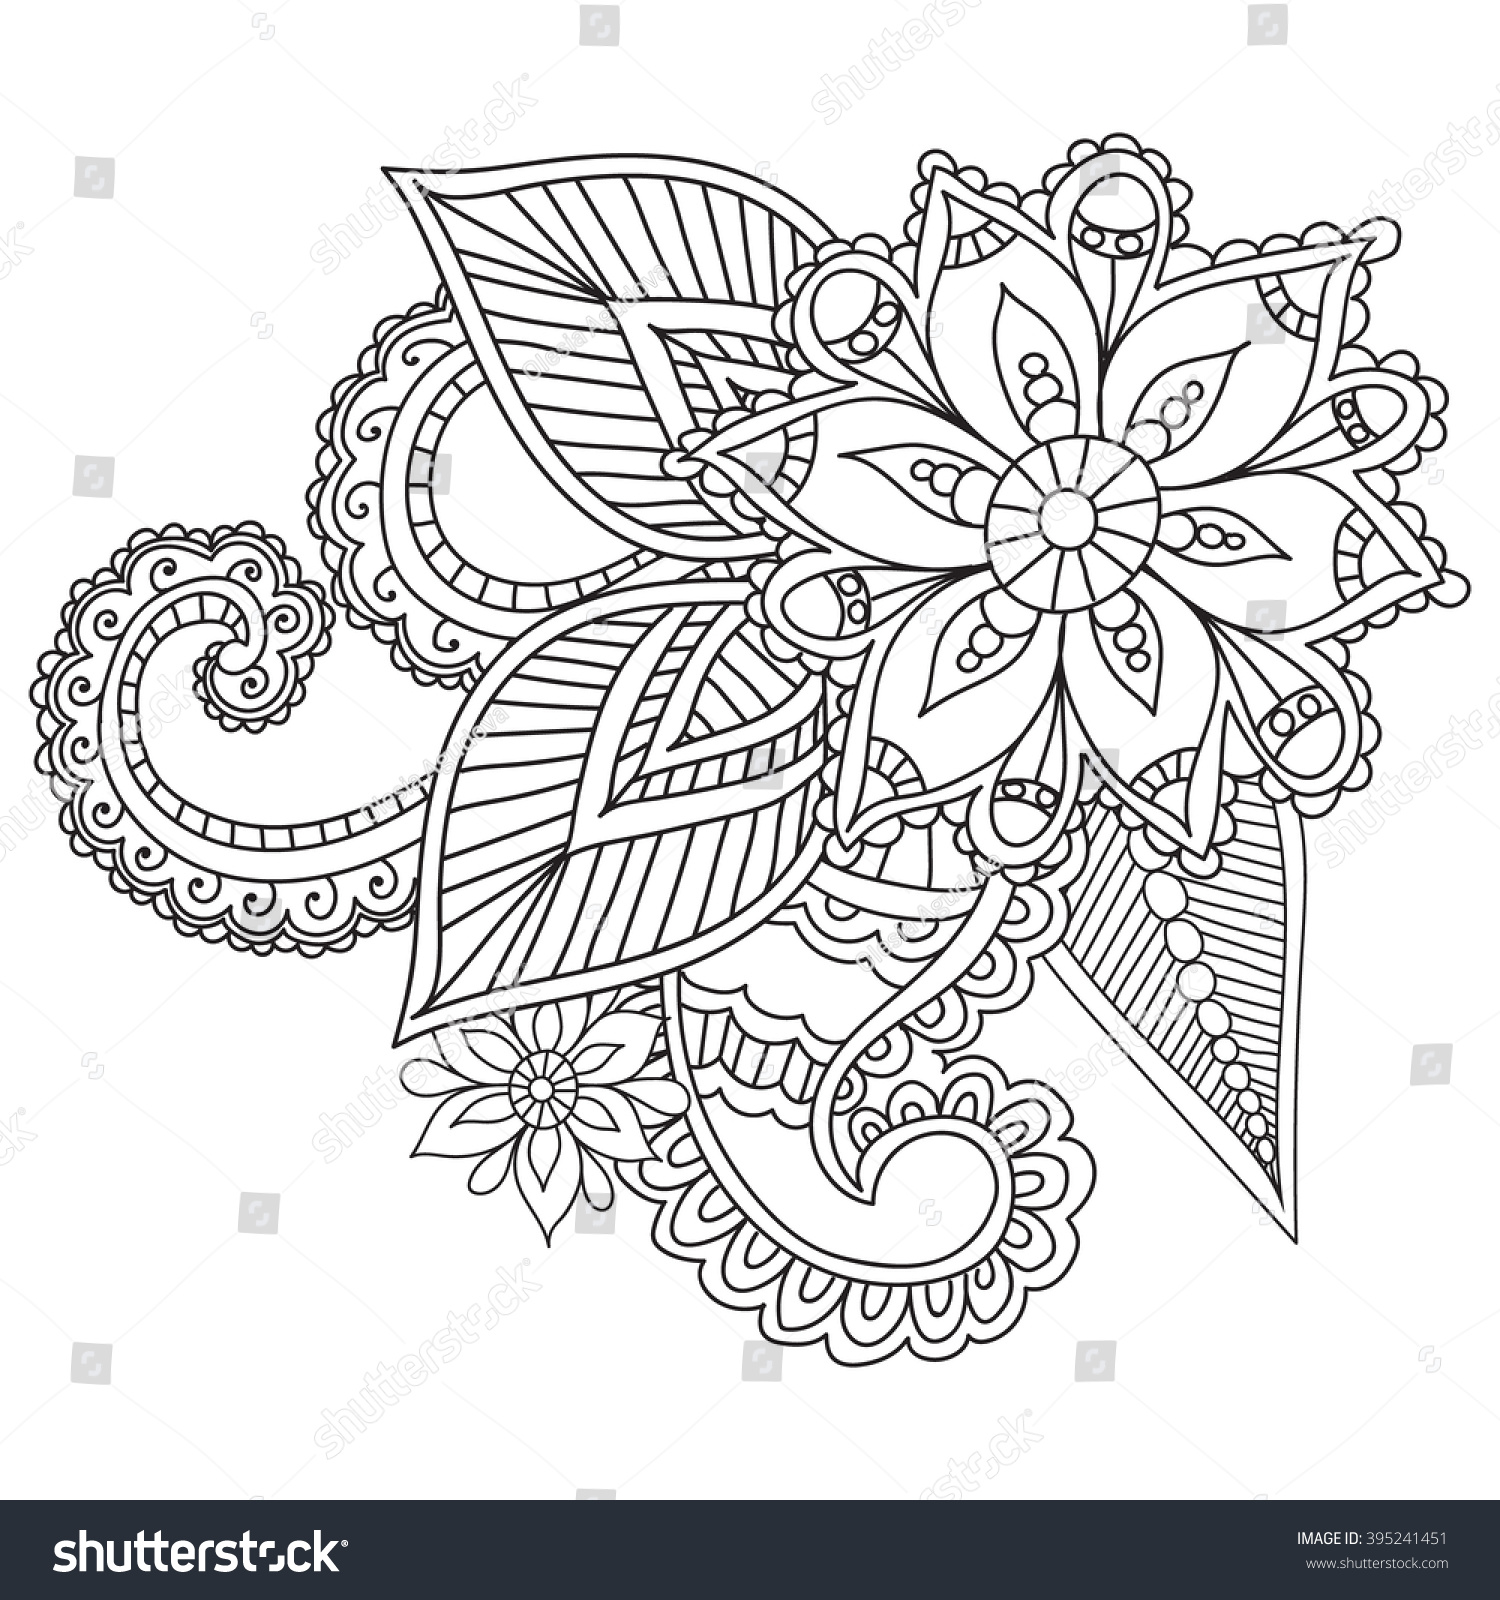 Coloring pages adults henna mehndi doodles stock vector for Henna coloring pages